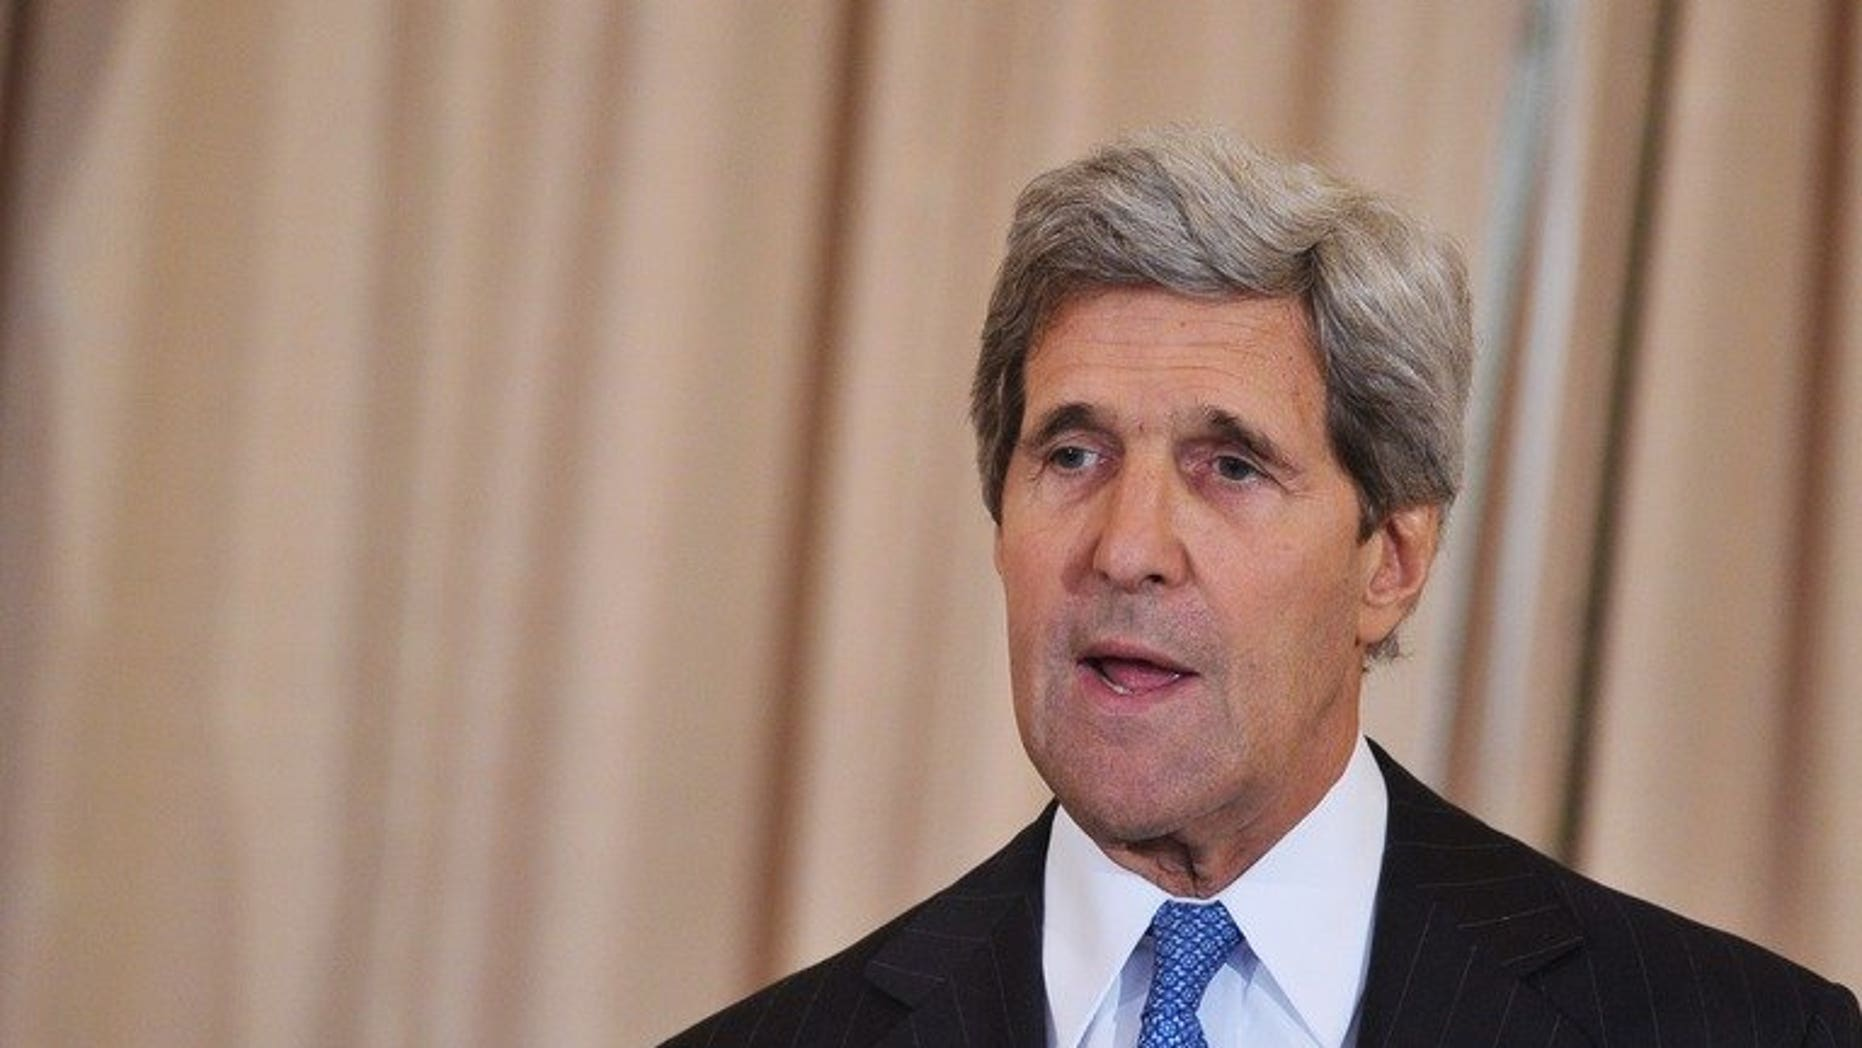 US Secretary of State John Kerry (R) speaks on July 24, 2013 at the State Department in Washington, DC. Kerry flew to Pakistan late Wednesday to press the new government on eliminating Islamist militant safe-havens as US-led troops prepare to leave Afghanistan.